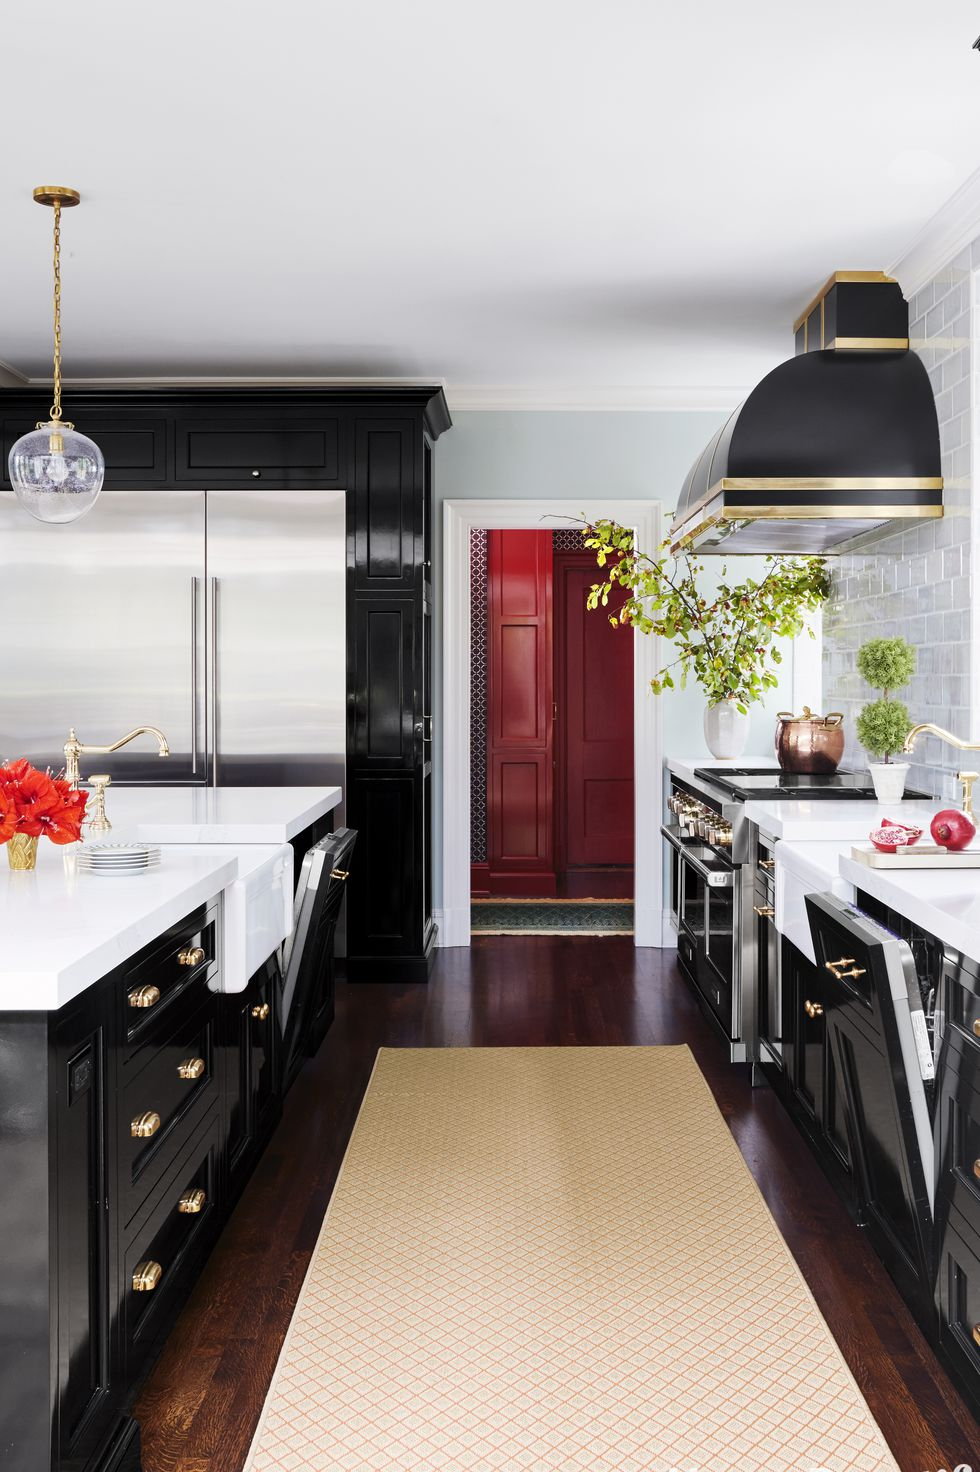 Black kitchen with gold accents and metal appliances